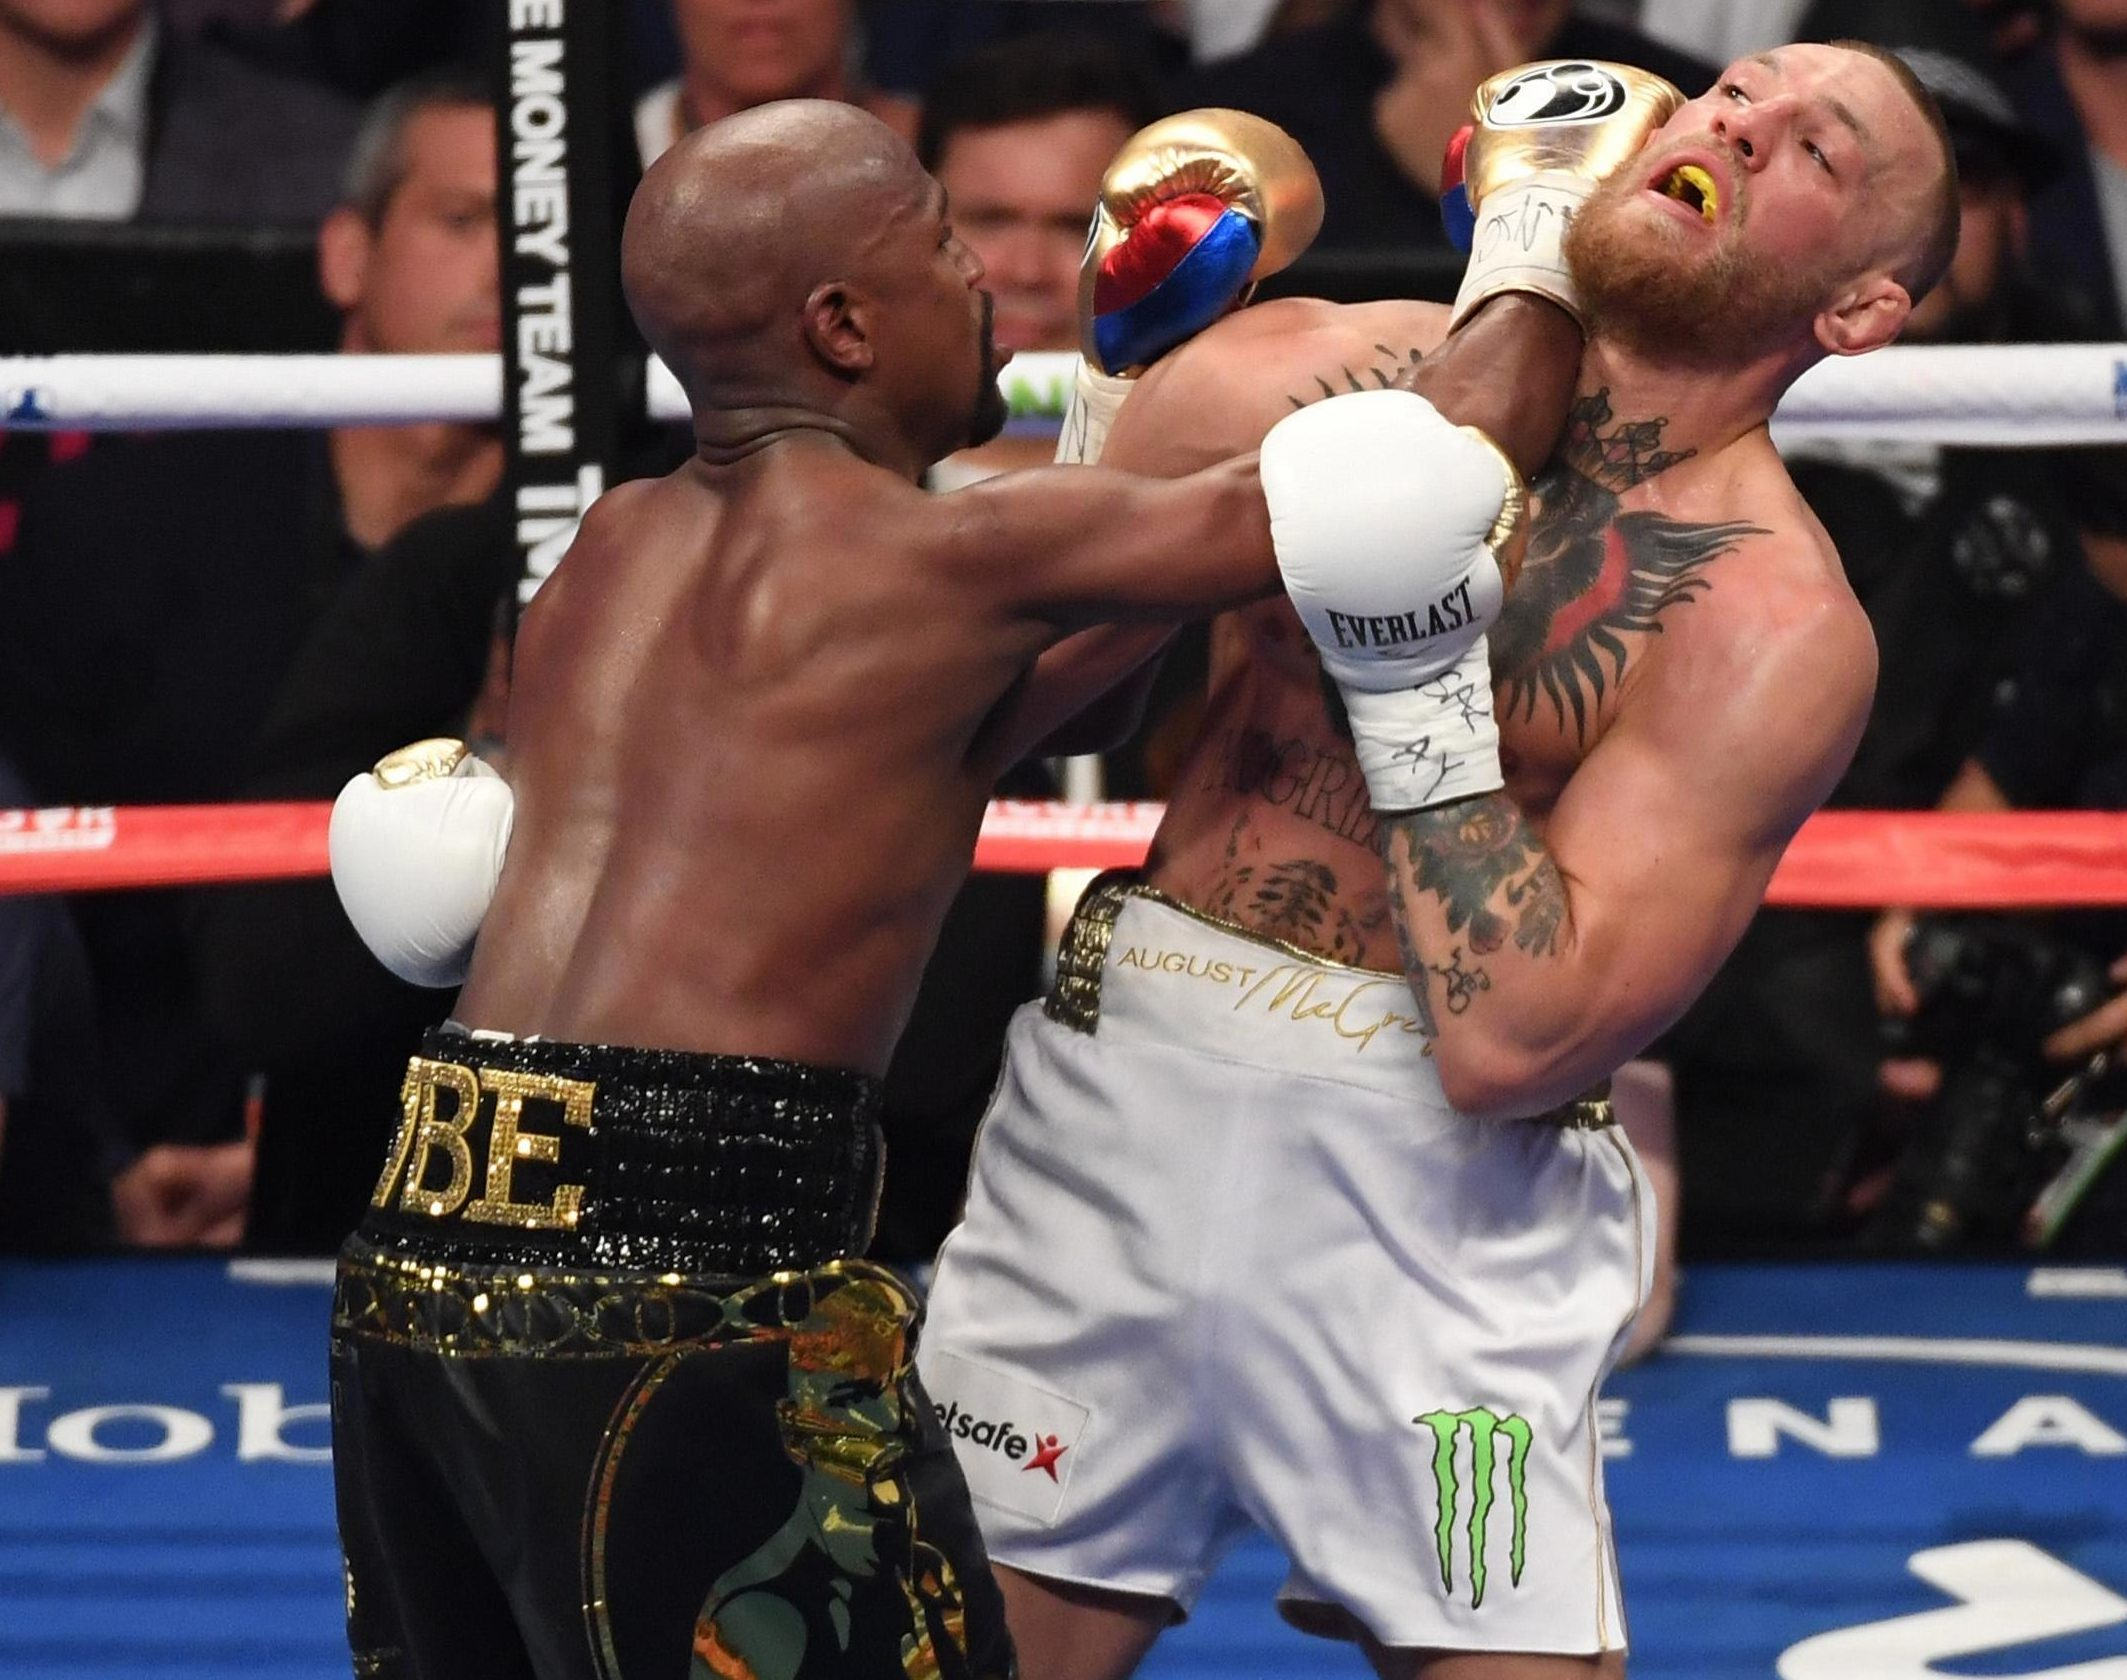 Floyd Mayweather beat Conor McGregor in their blockbuster boxing match last August